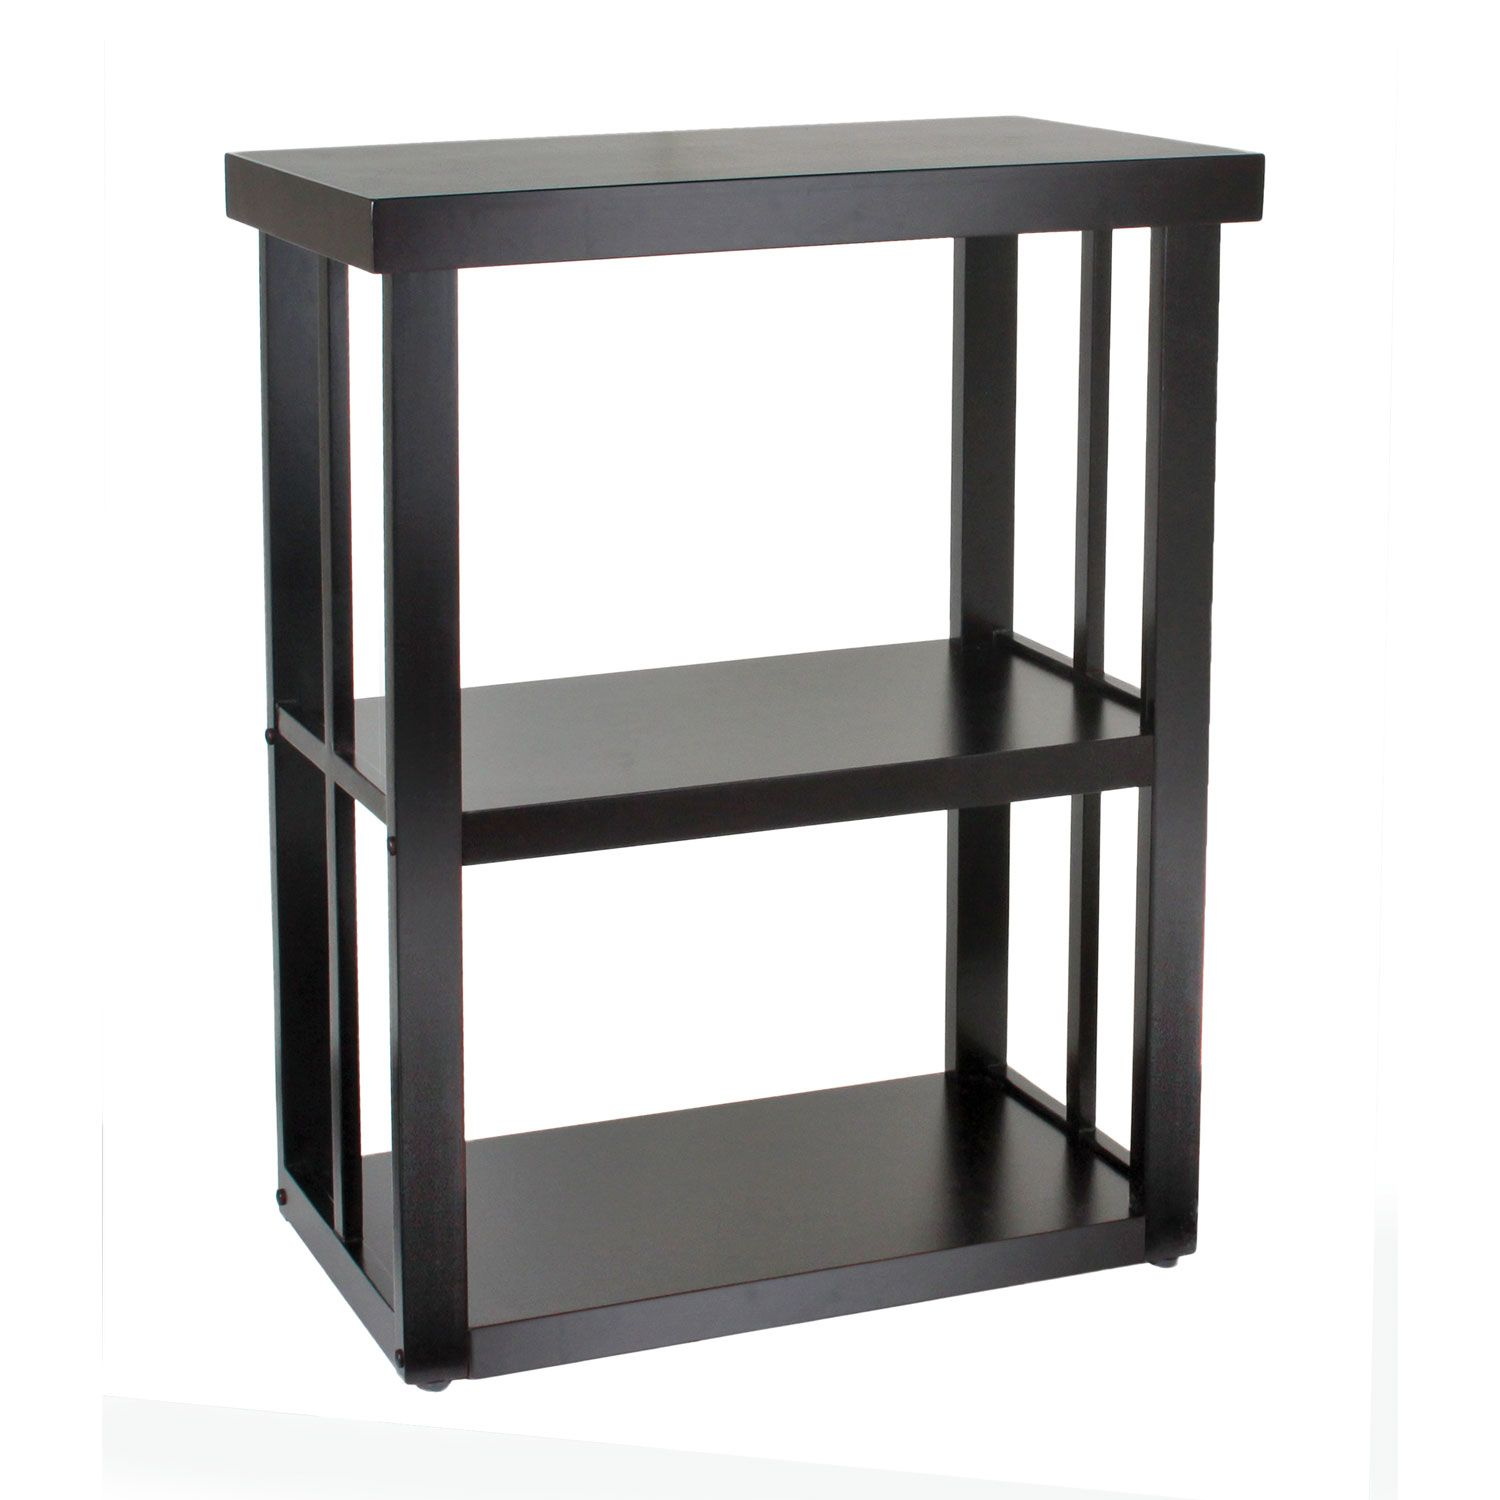 Petco Newport Wooden Tank Stand shopping around for a new fish